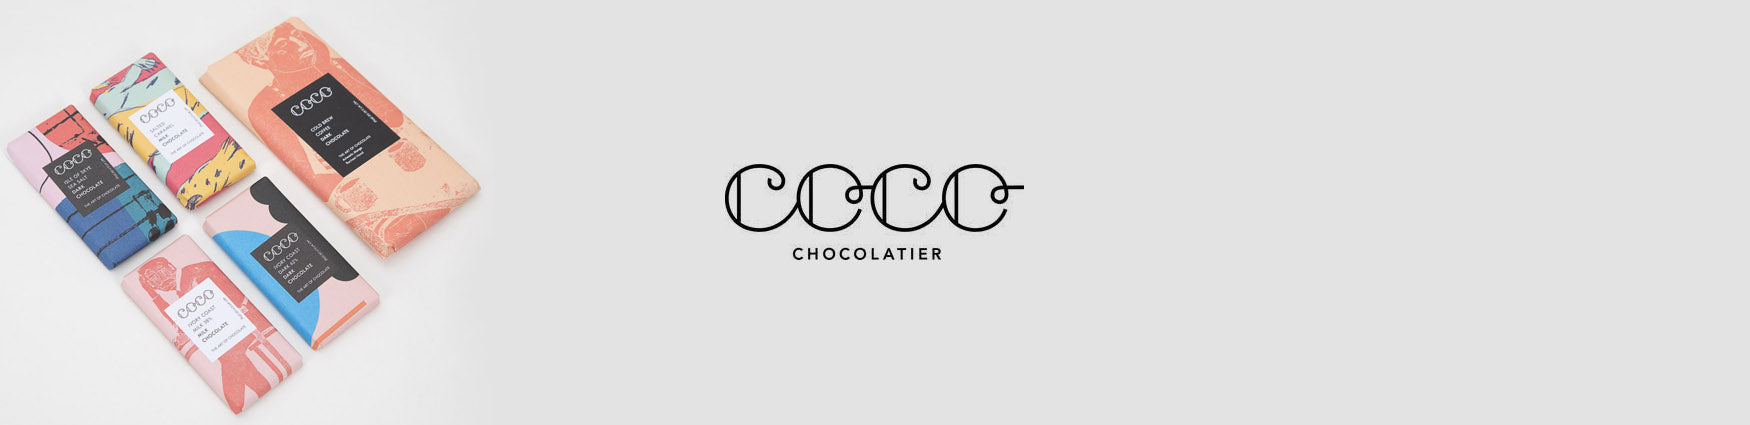 COCO Chocolatier | Shop online roosbeach.co.uk